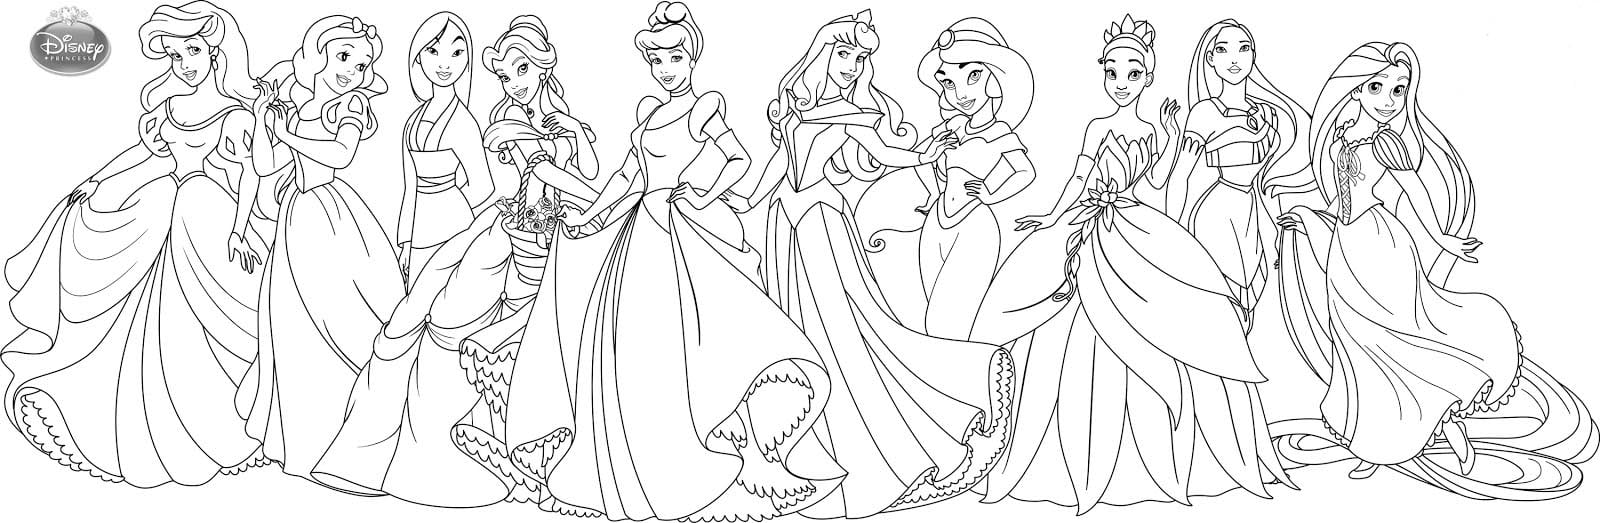 Pintar As Princesas Da Disney